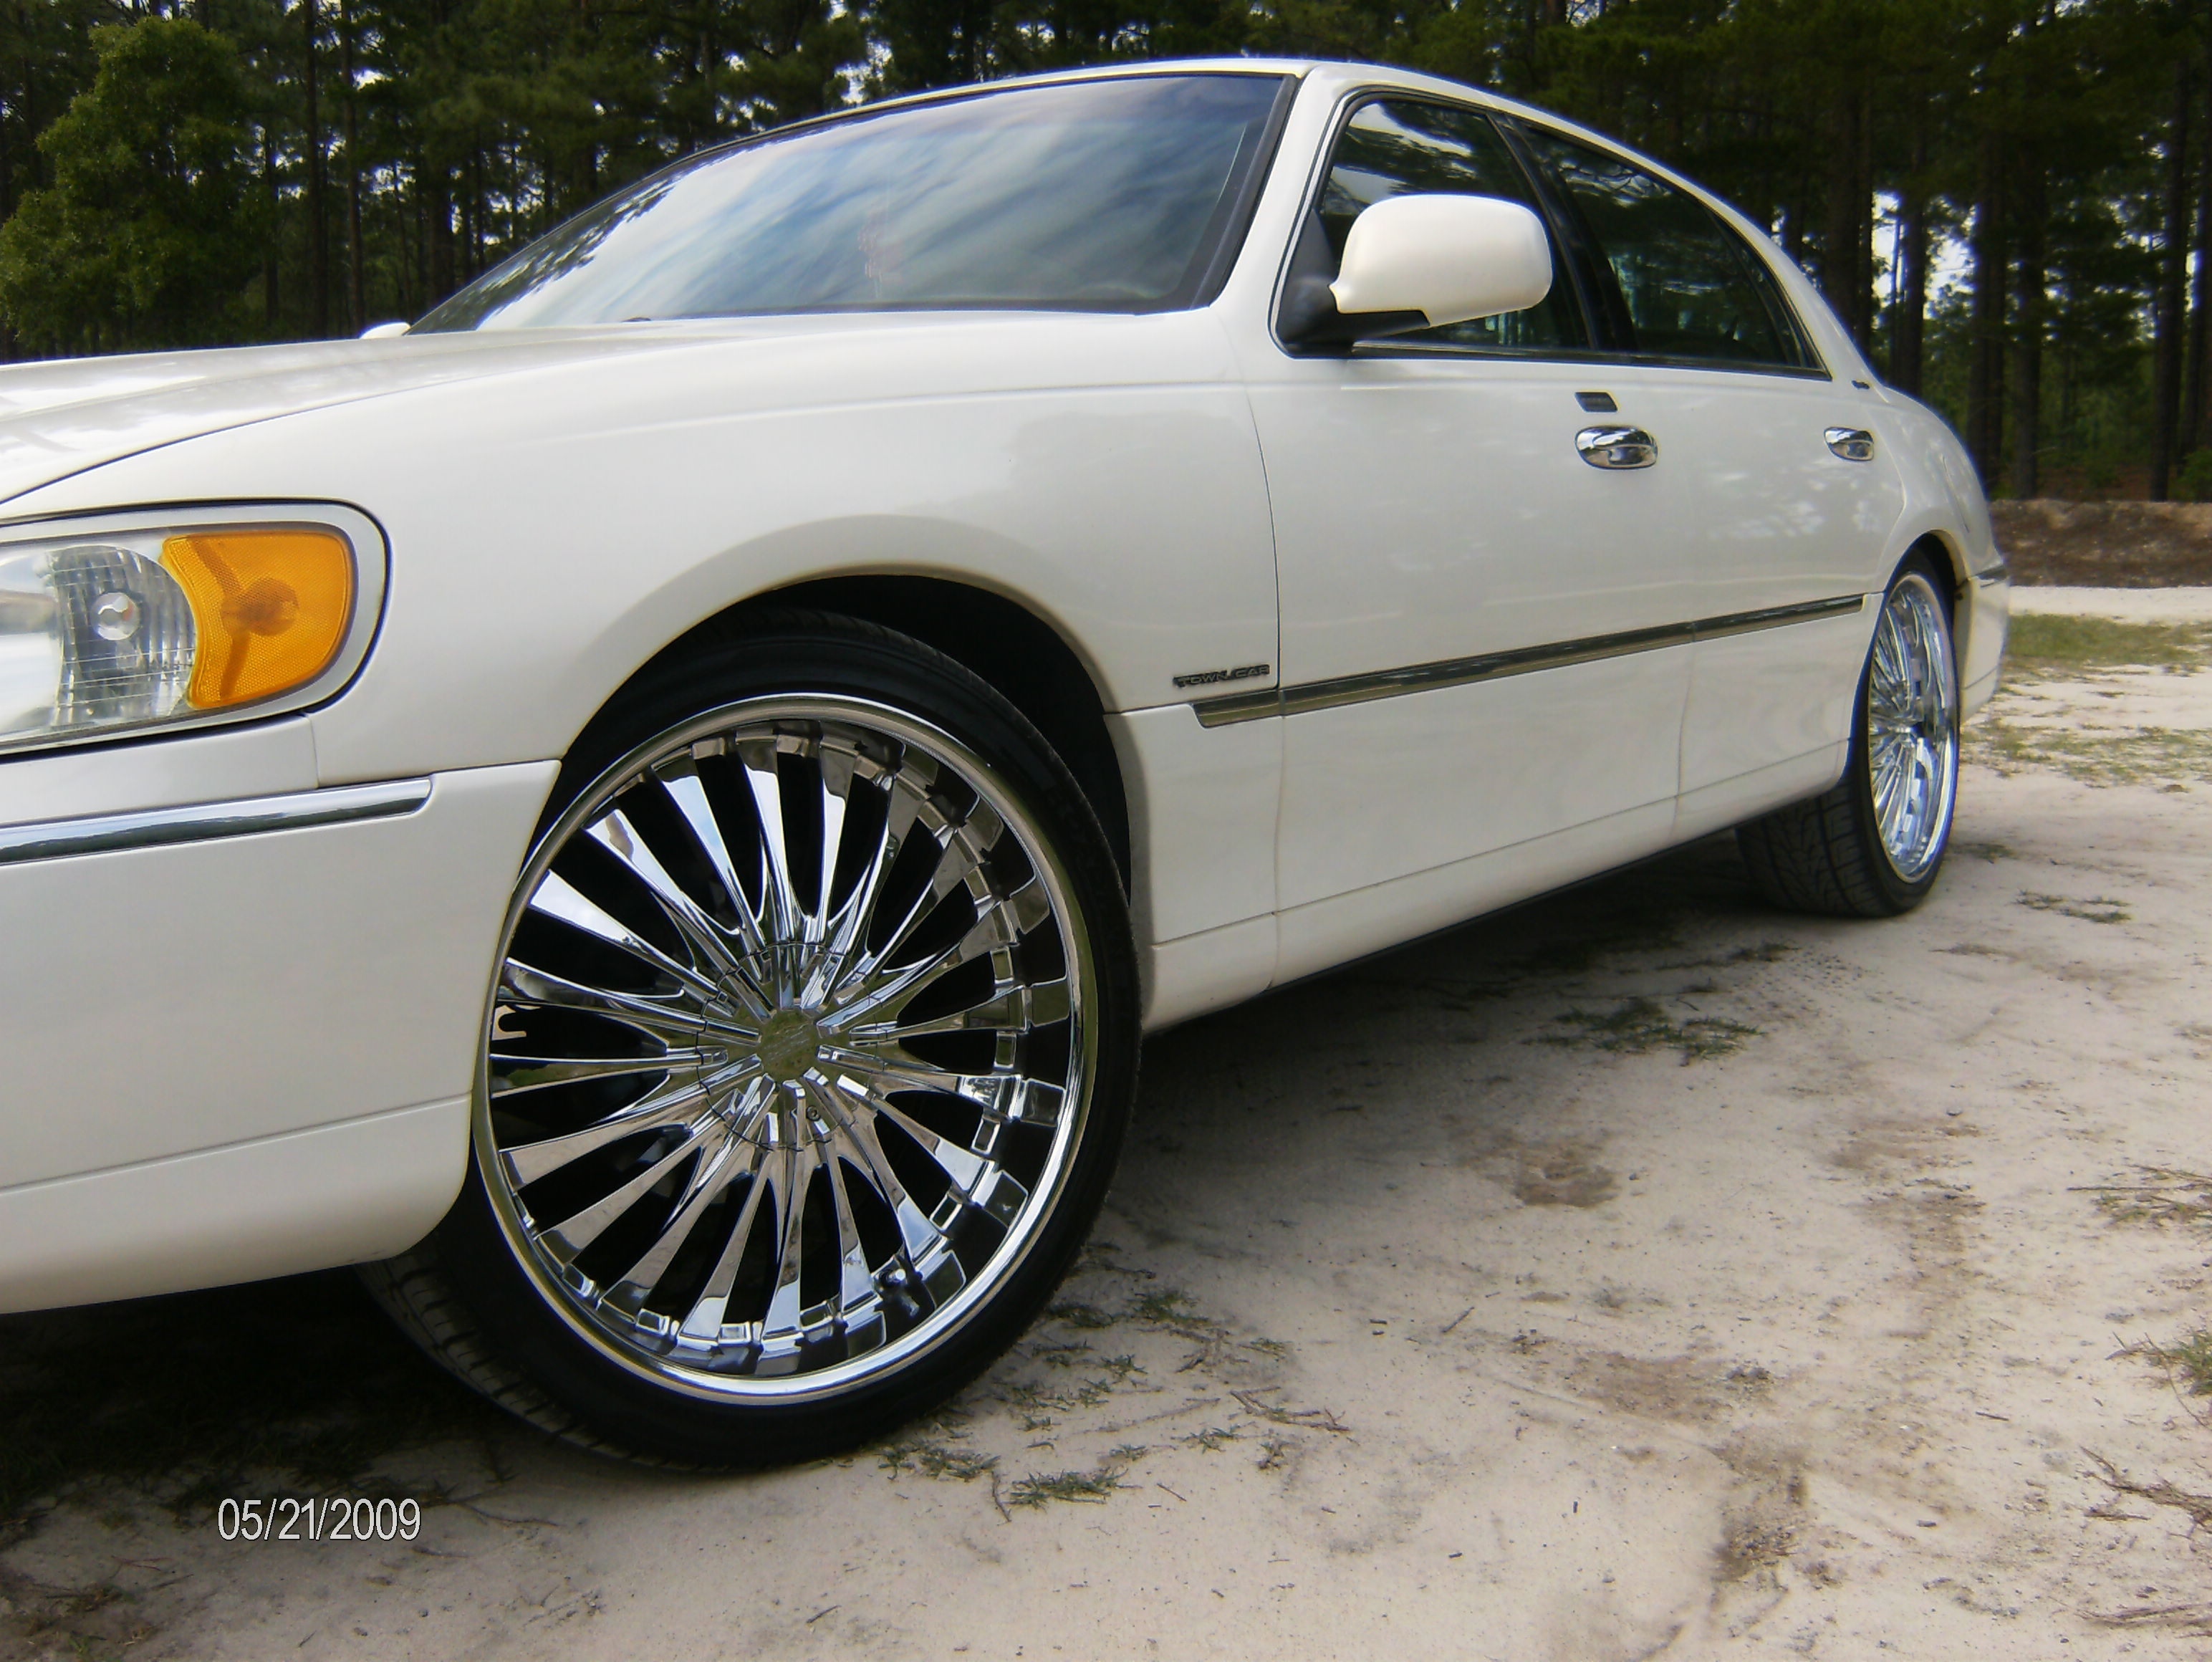 Moeskeeterman 1999 Lincoln Town Car Specs Photos Modification Info